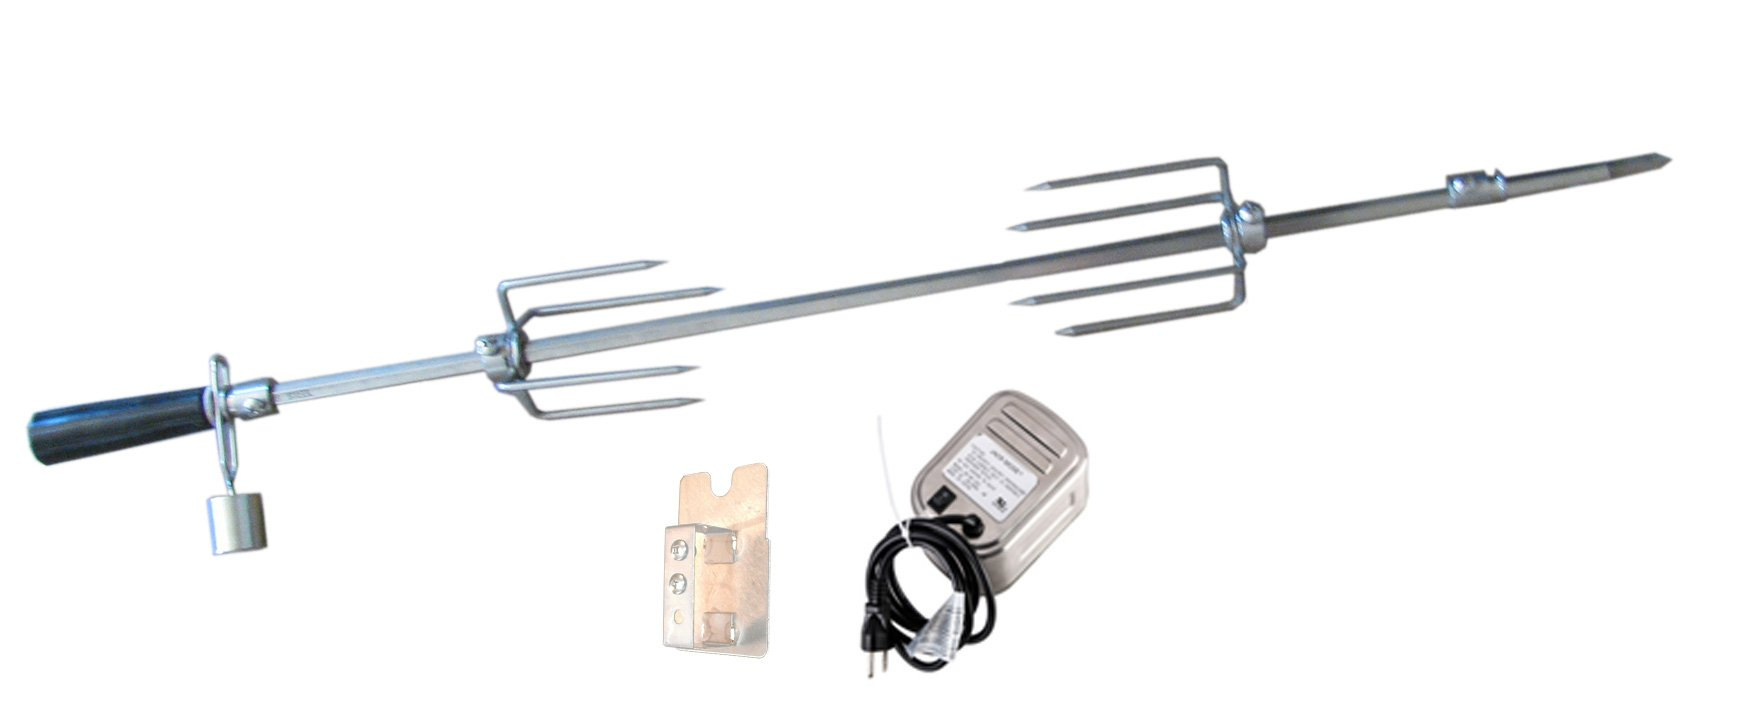 SUNSTONE P-RK-5B 304 SS 5-Piece Rotisserie Kit with Mounting Brackets Burner Grill, 42-Inch